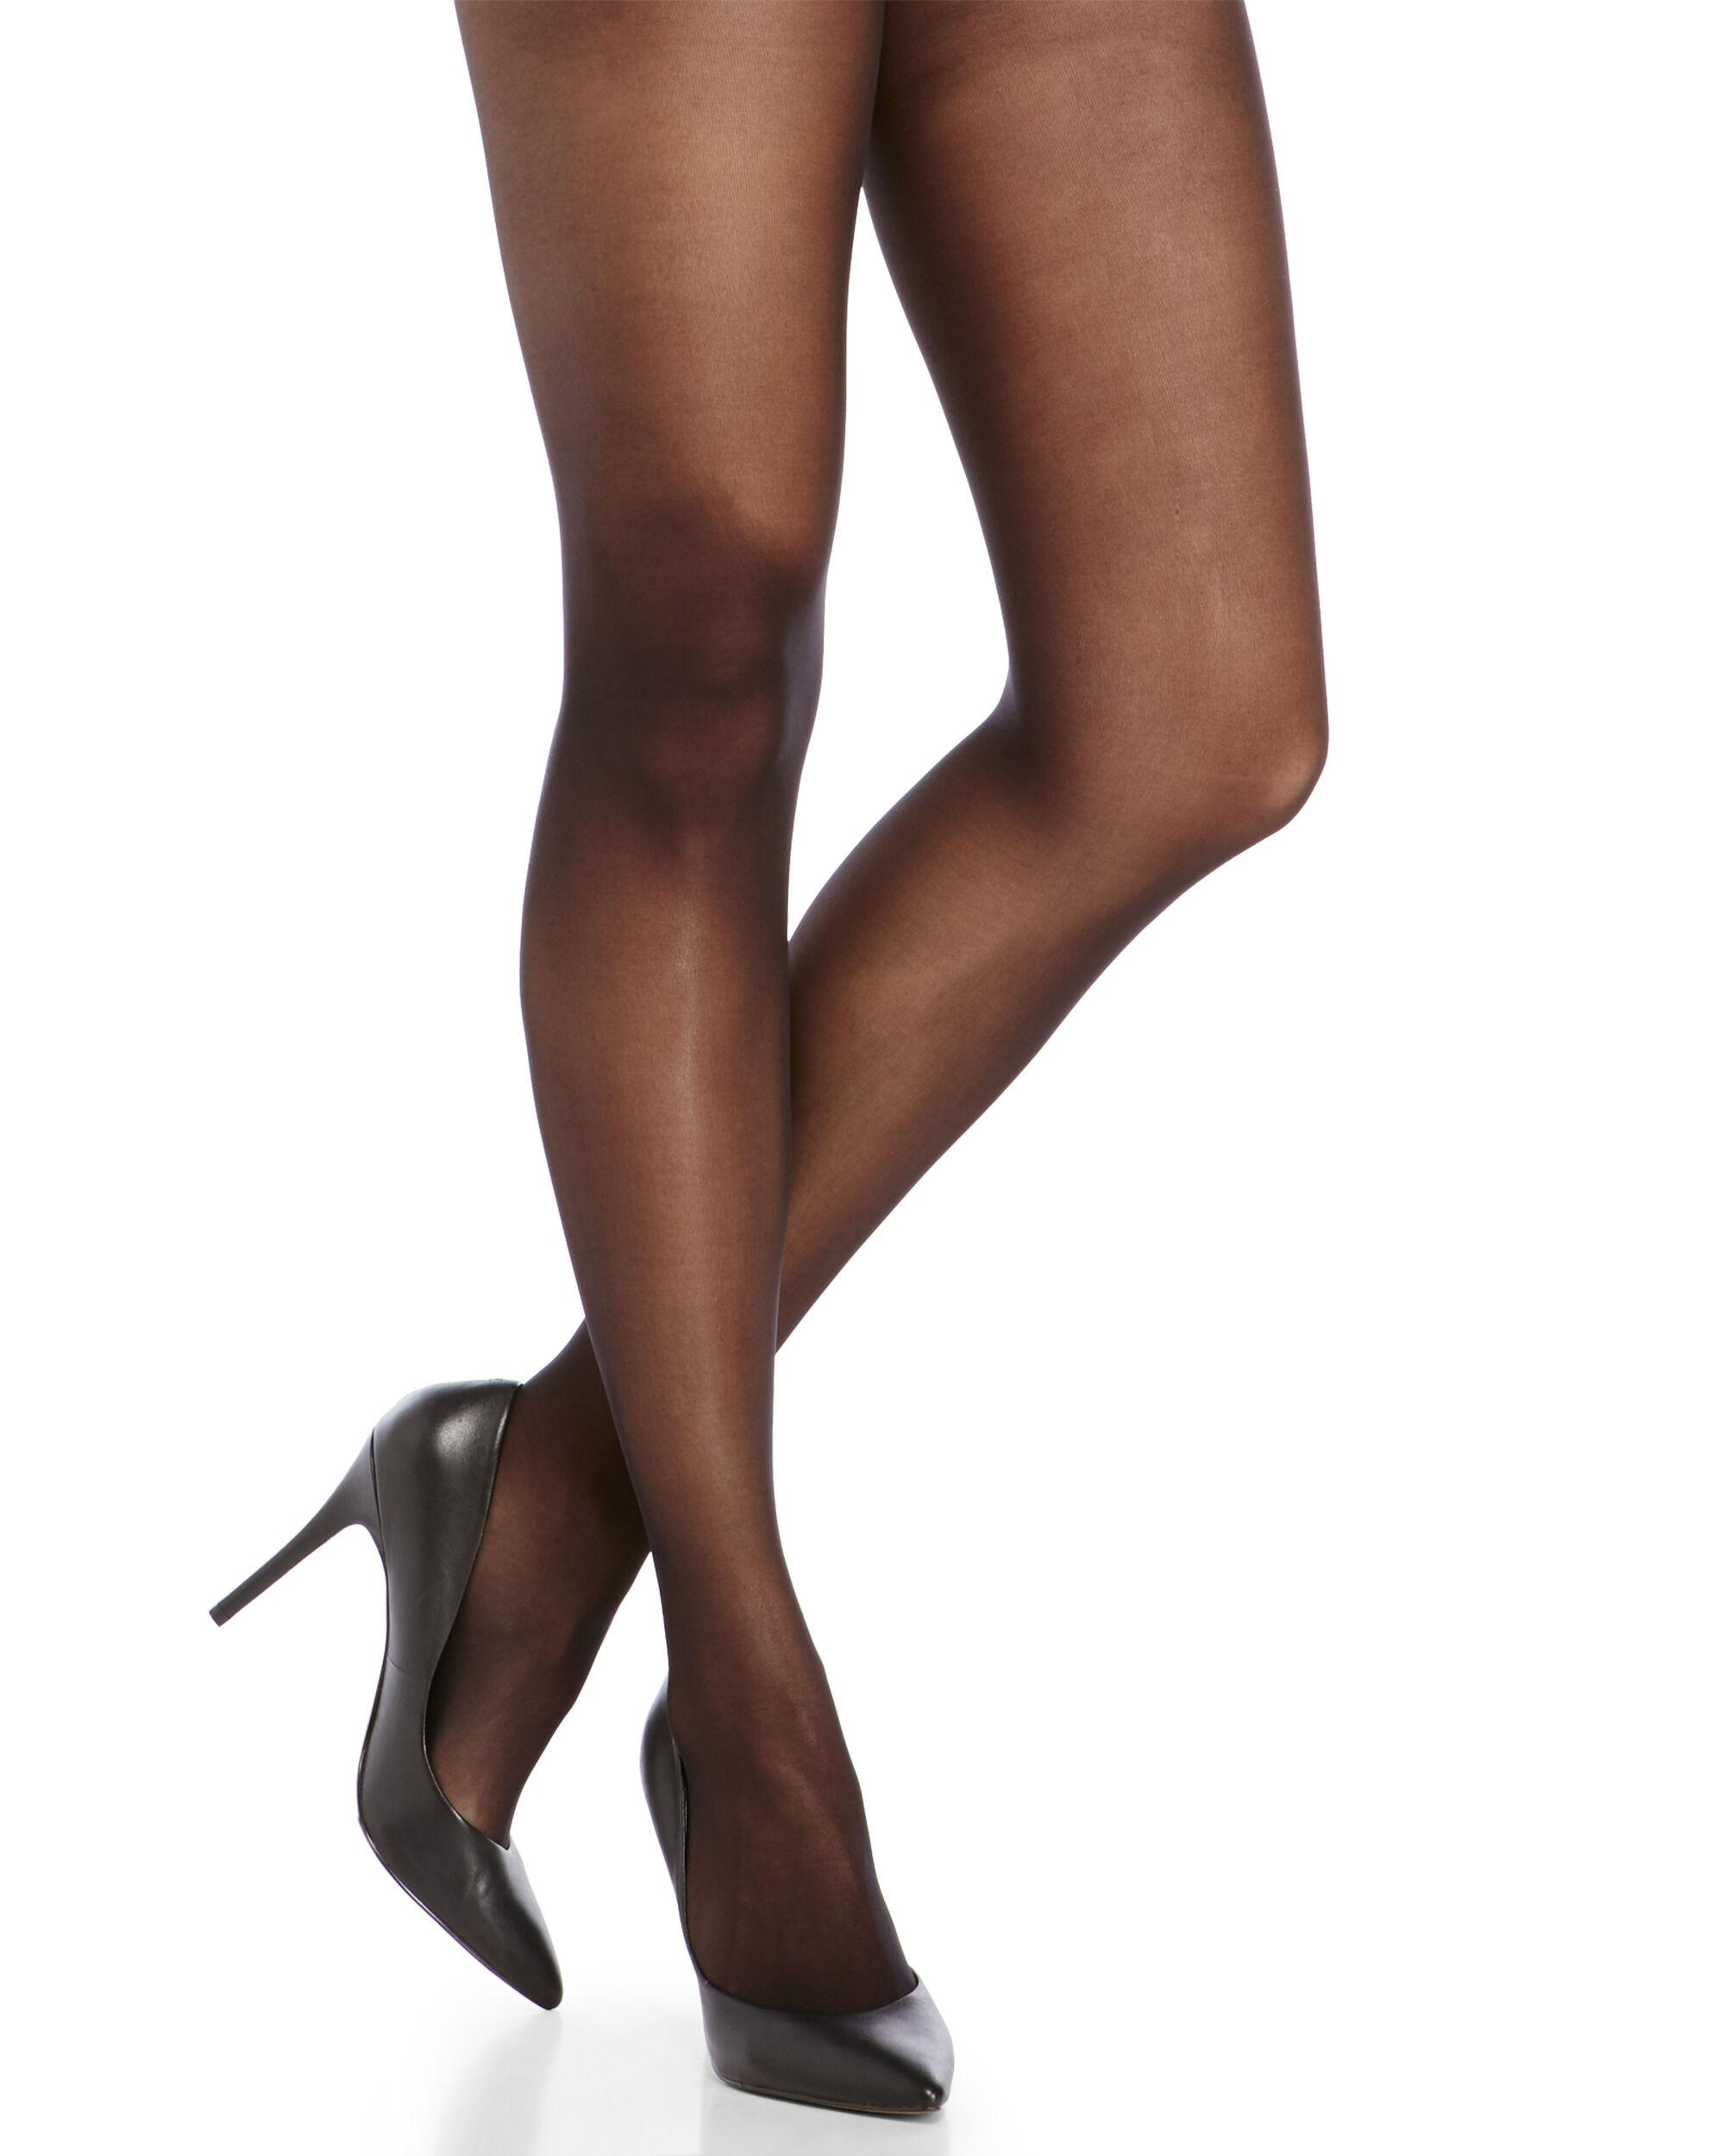 f56854d28d0c0 Hue Black Sheer Control Top Tights in Black - Lyst